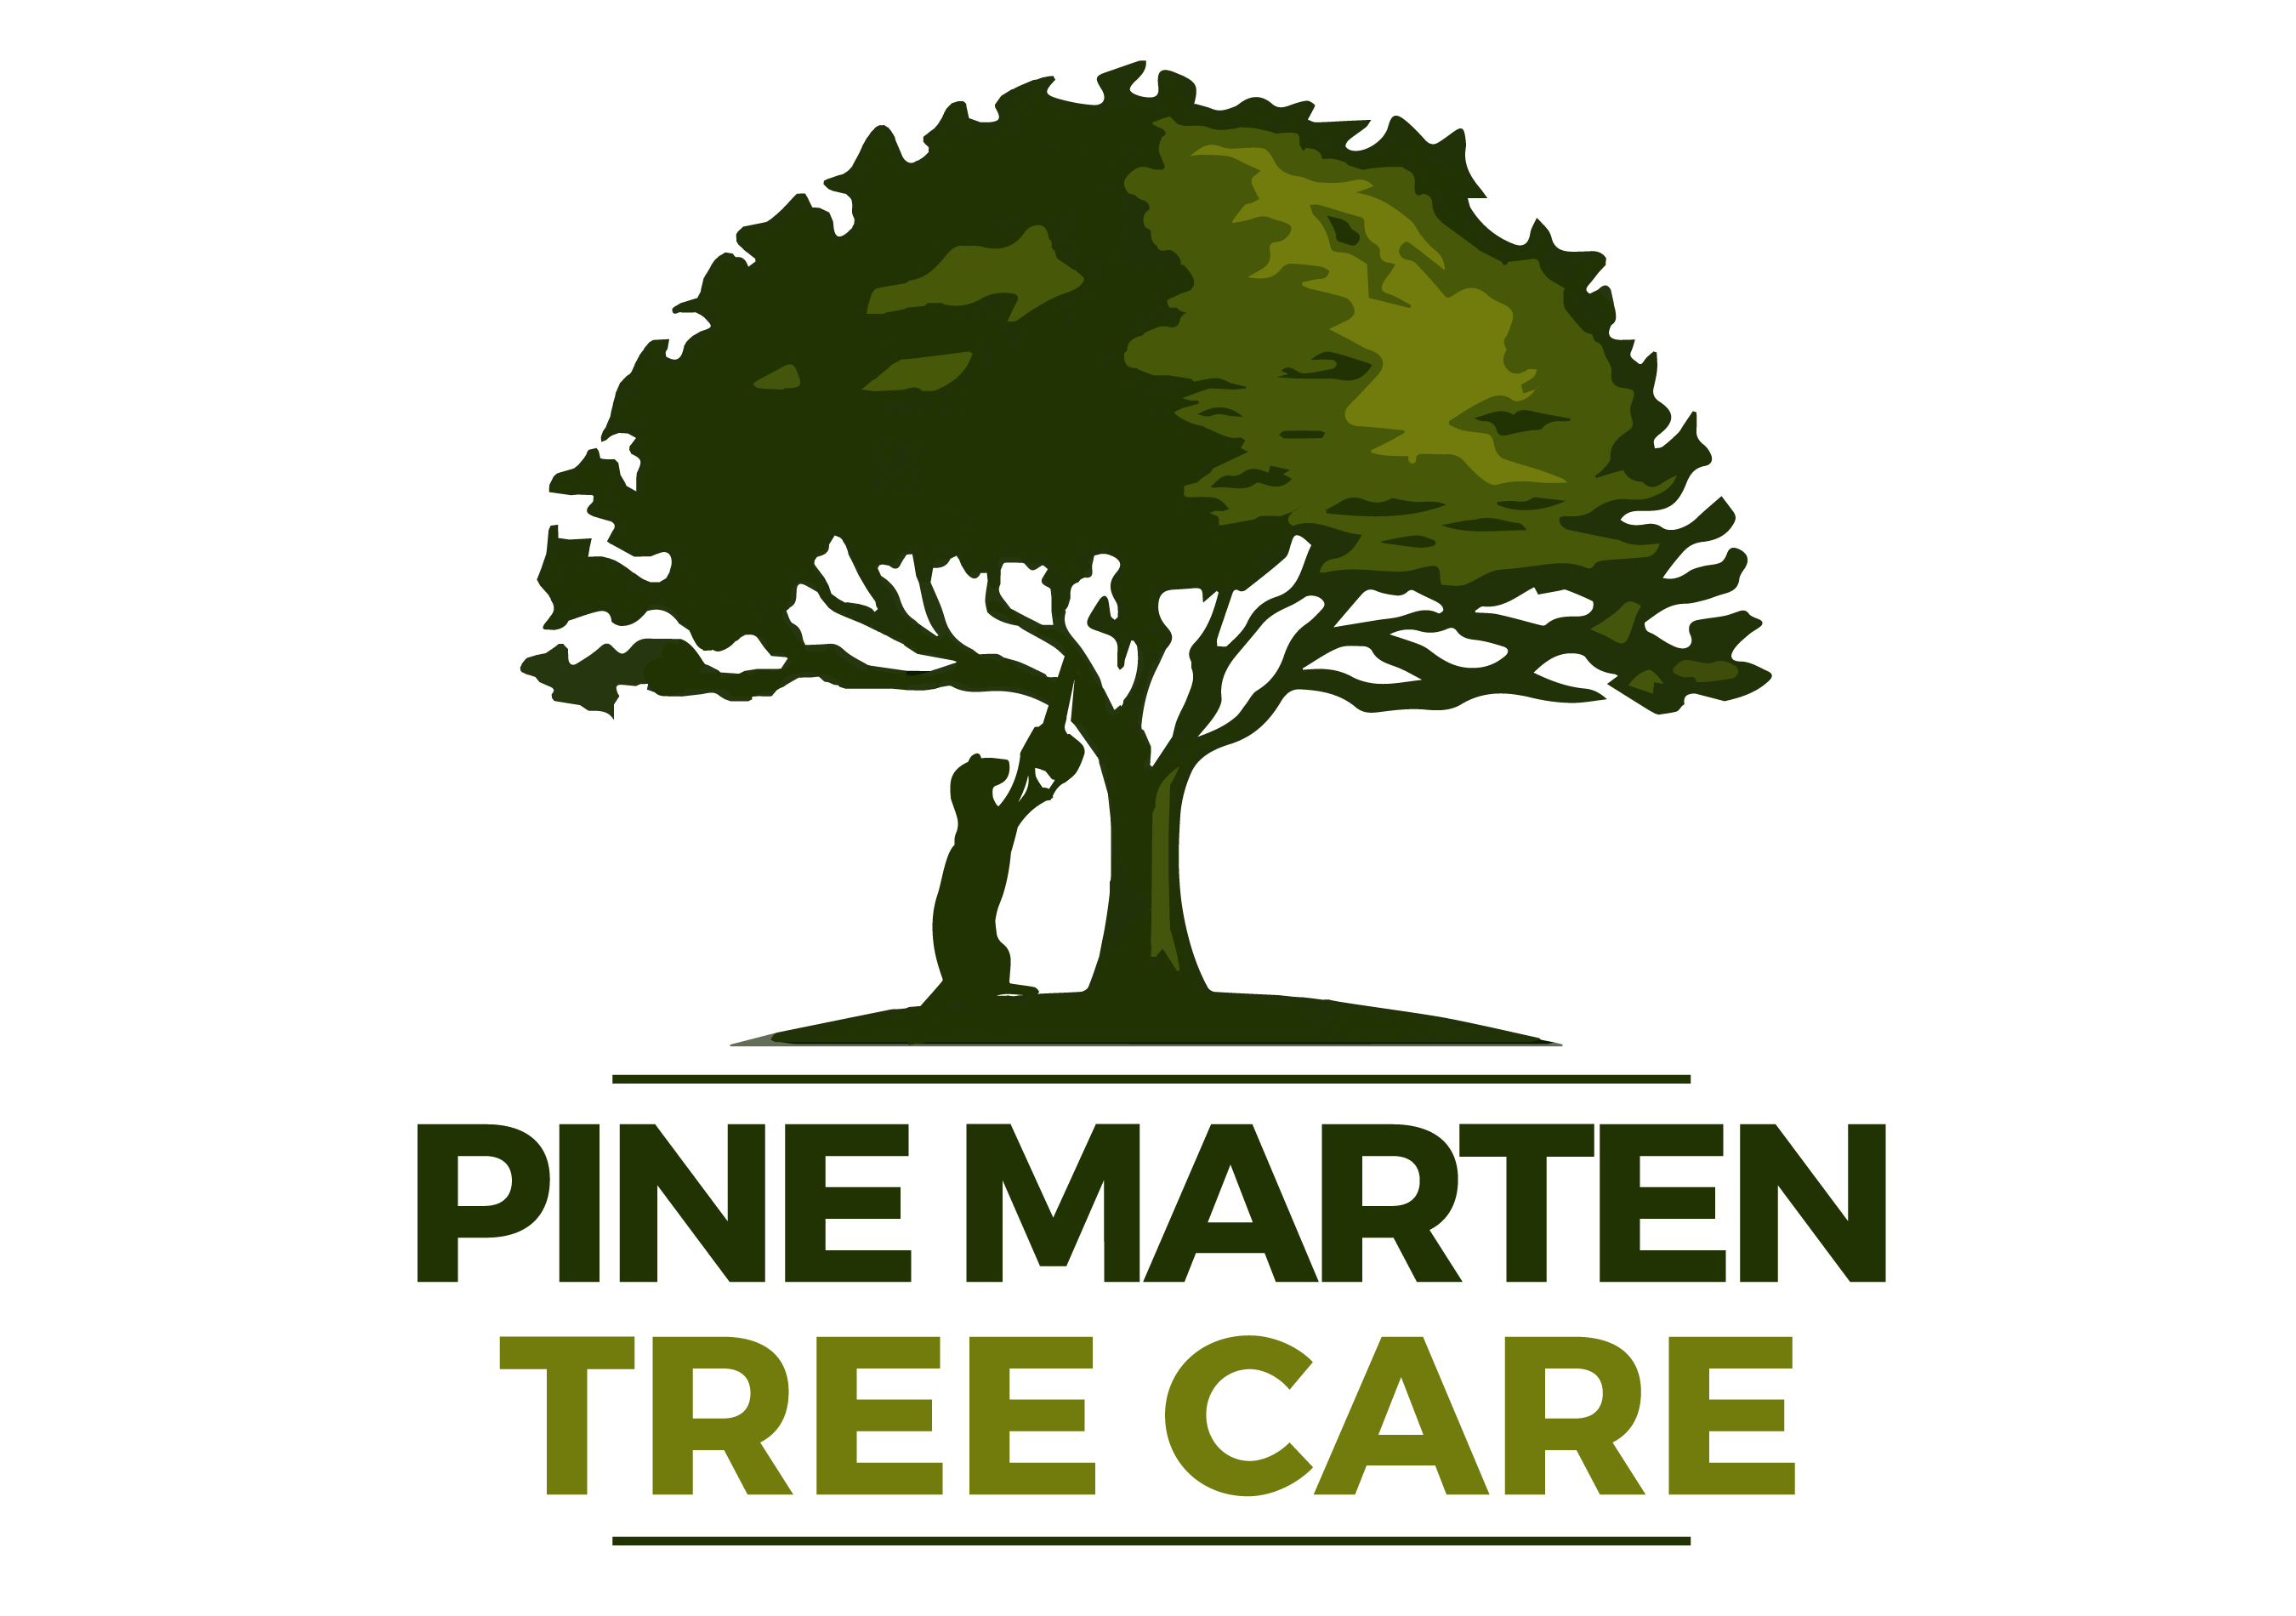 Pine Marten Tree Care Spokane, Wa | 509-904-6345